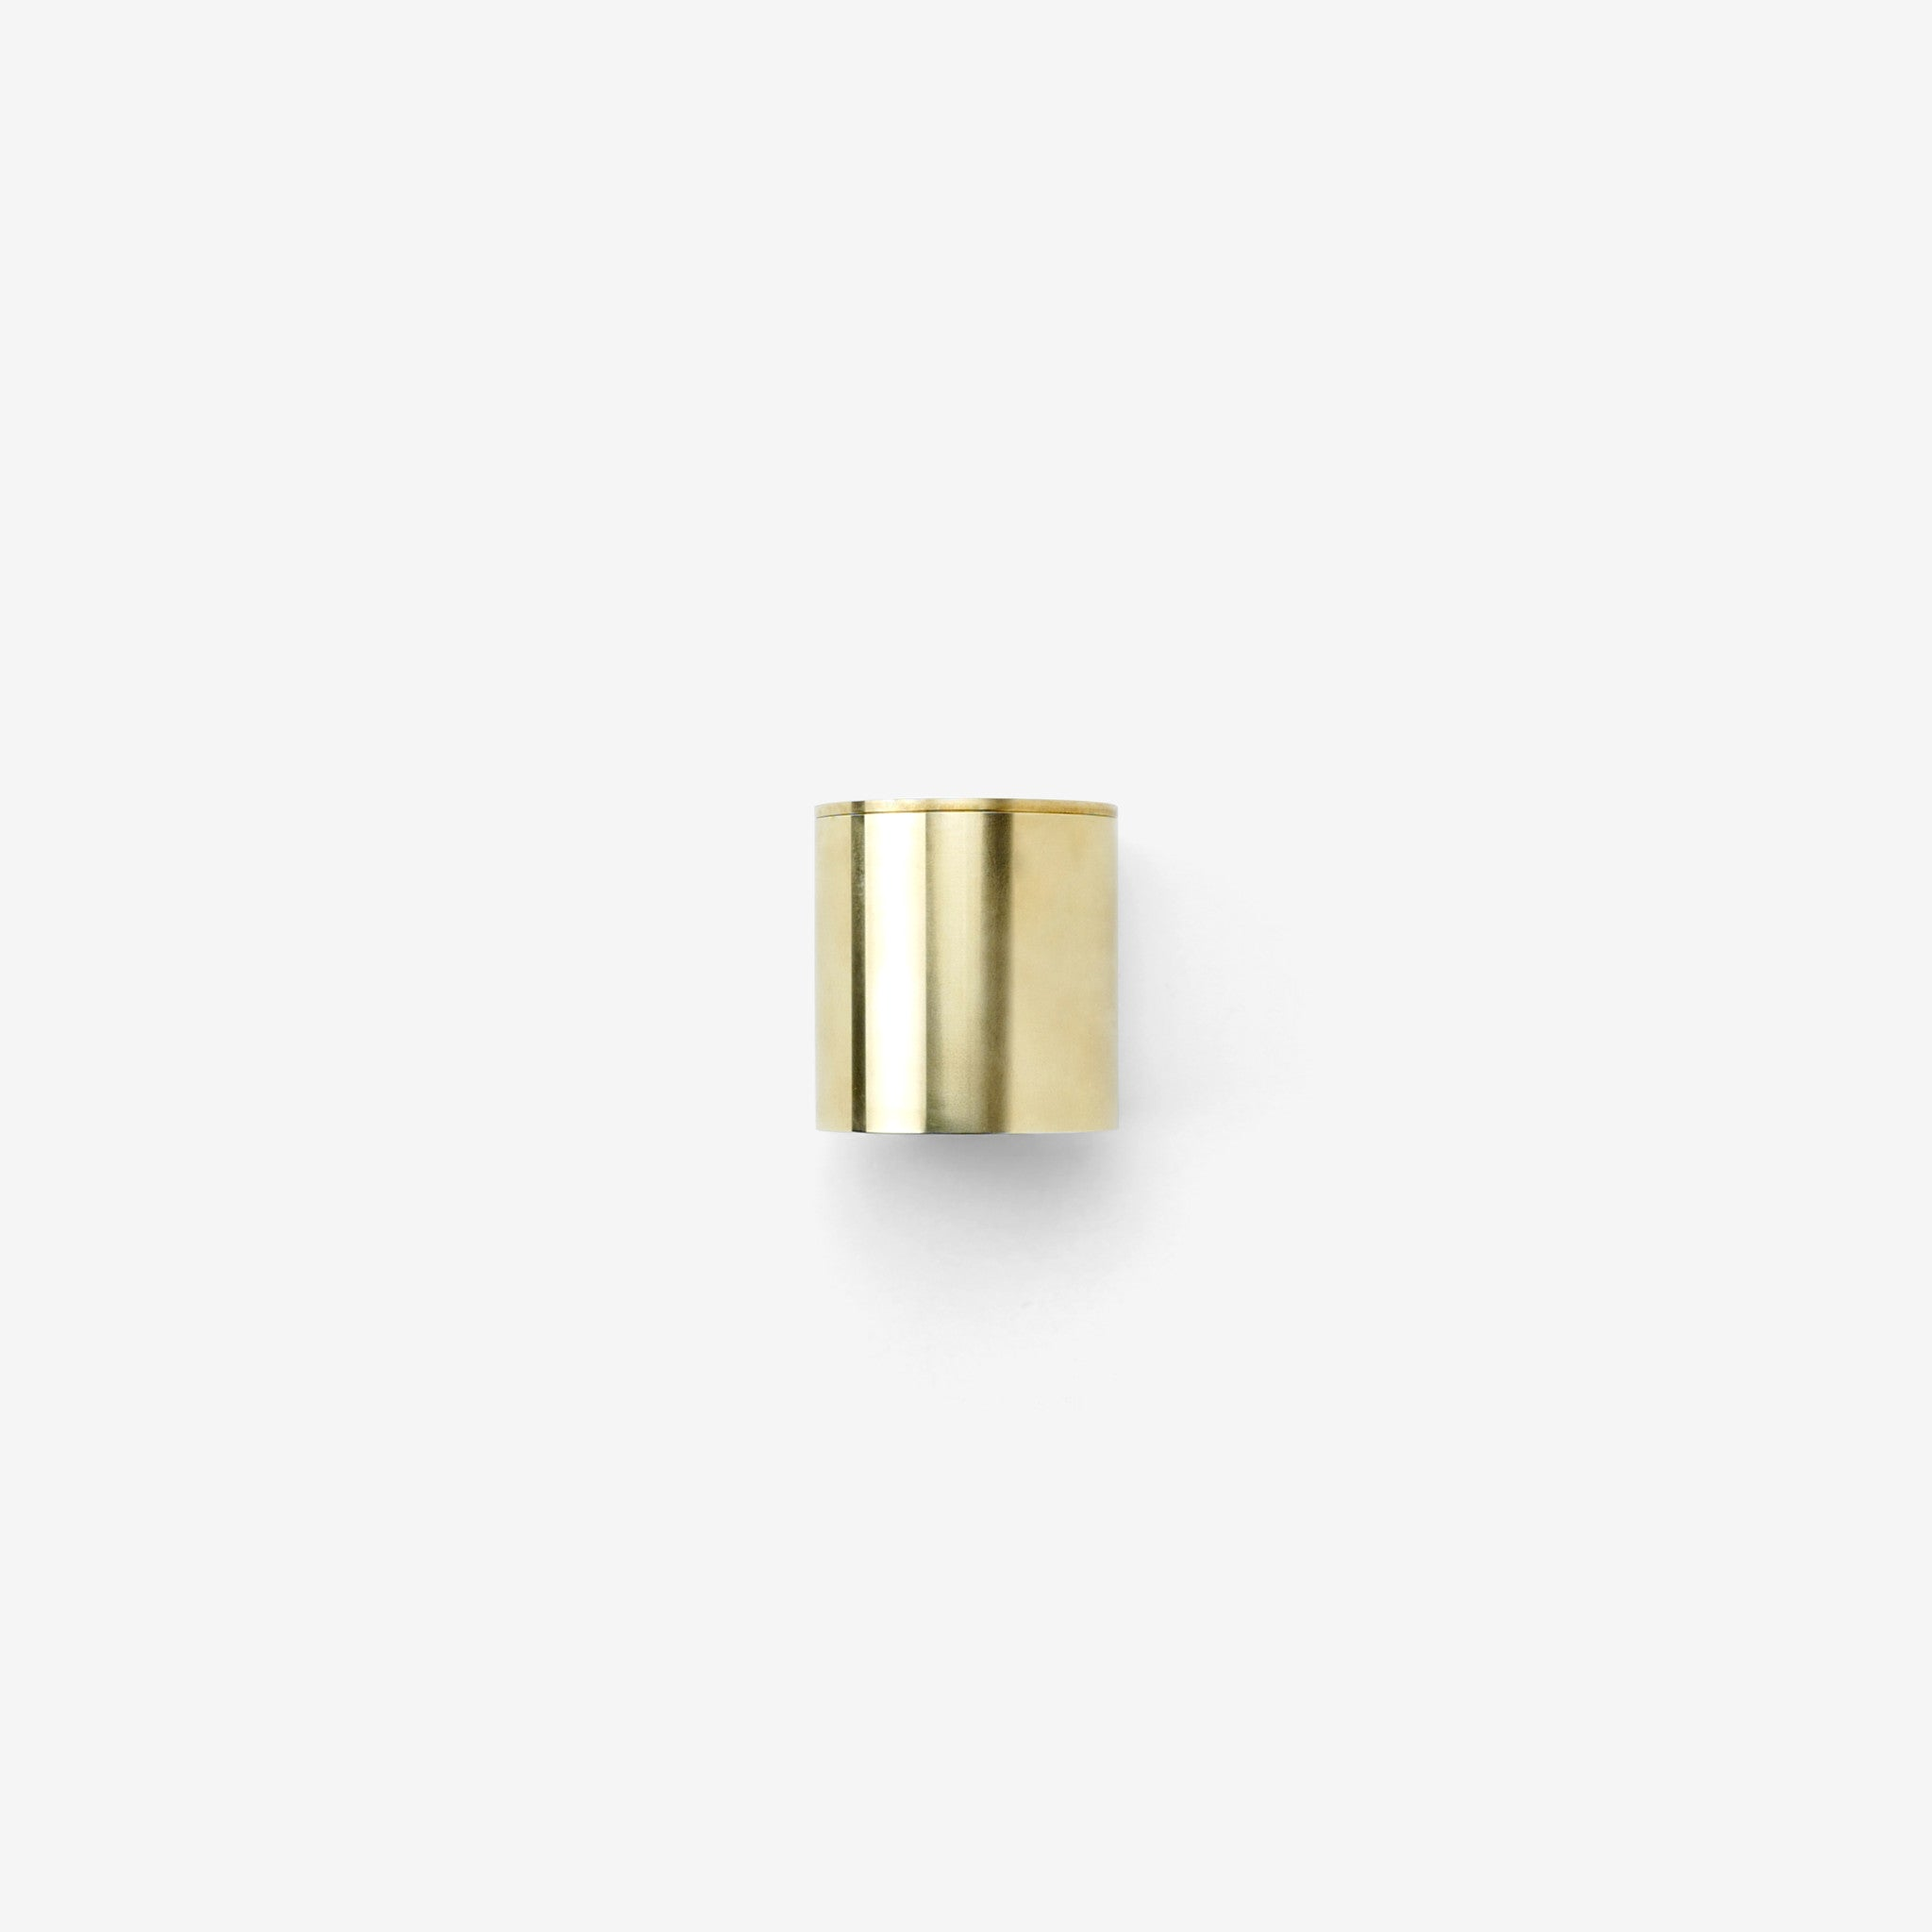 Machined Brass w/ Lid